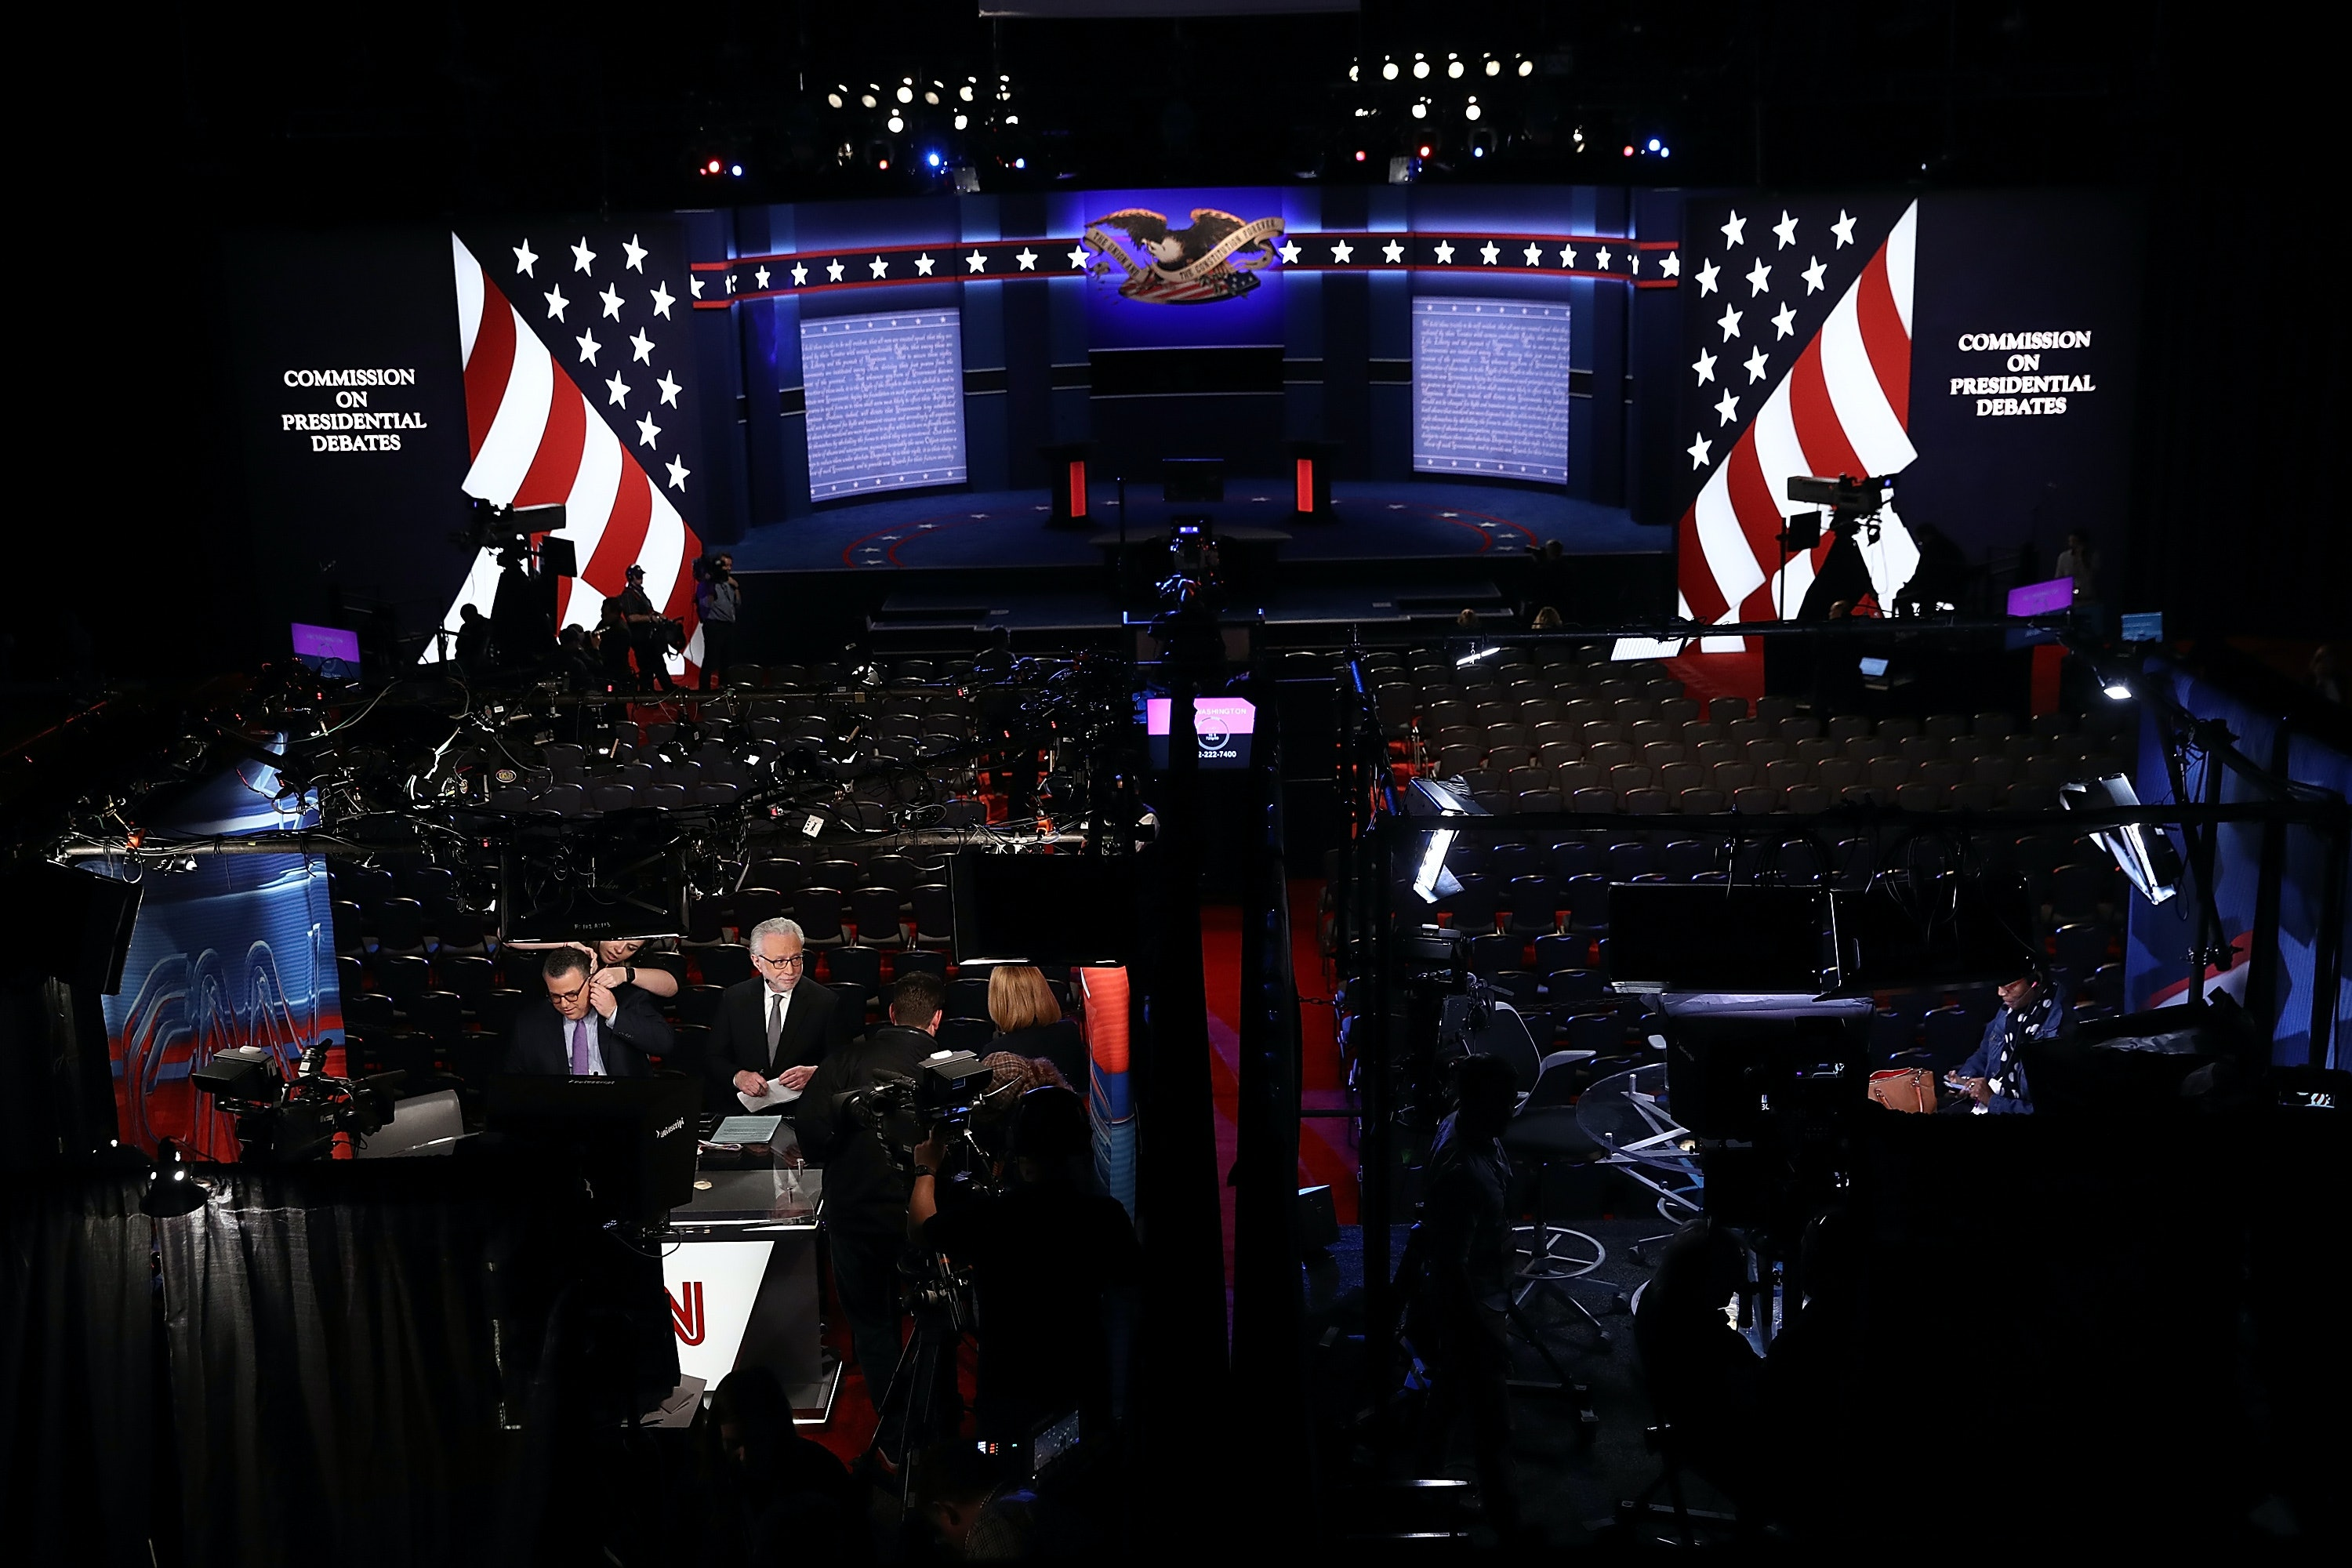 Trump Team Admits 'Some Missed Opportunities' in Debate, Sources Say